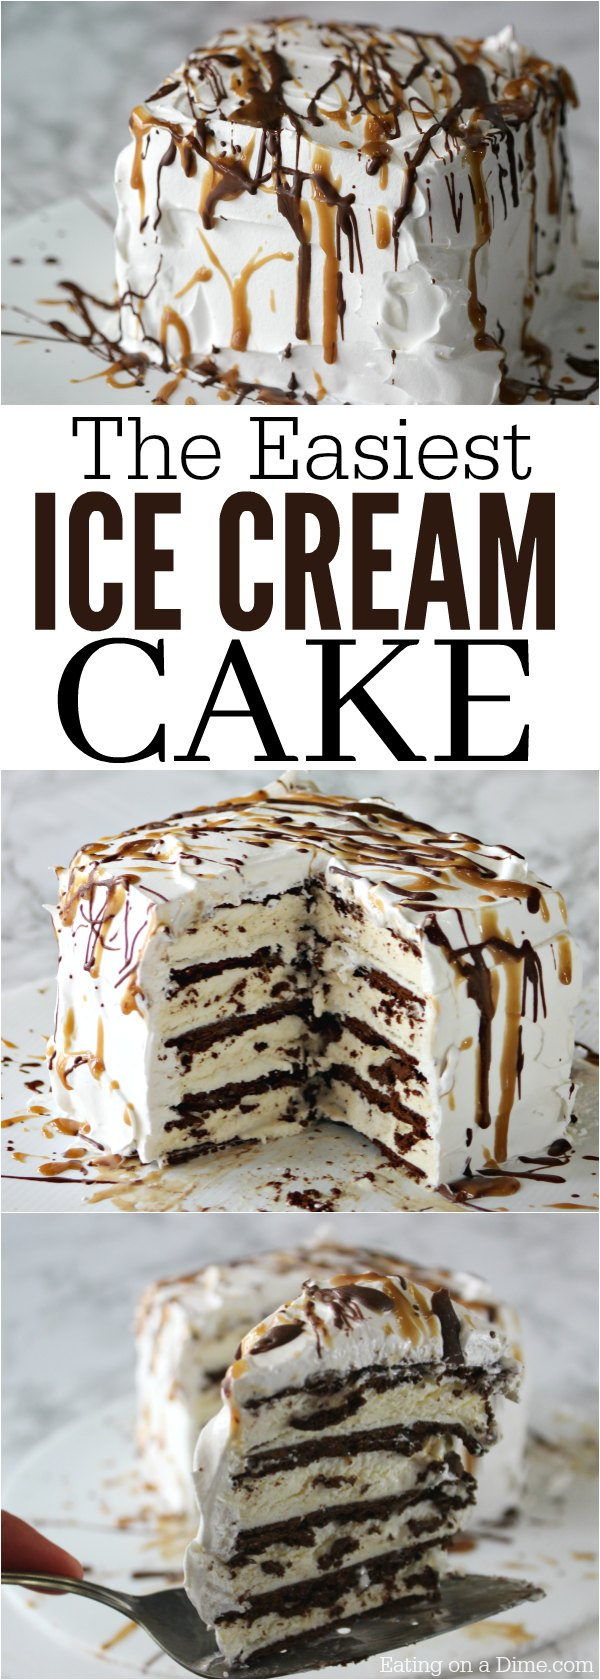 Easy ice cream cake recipe easy ice cream sandwich recipe this is the best easy ice cream cake recipe this easy ice cream sandwich ccuart Gallery